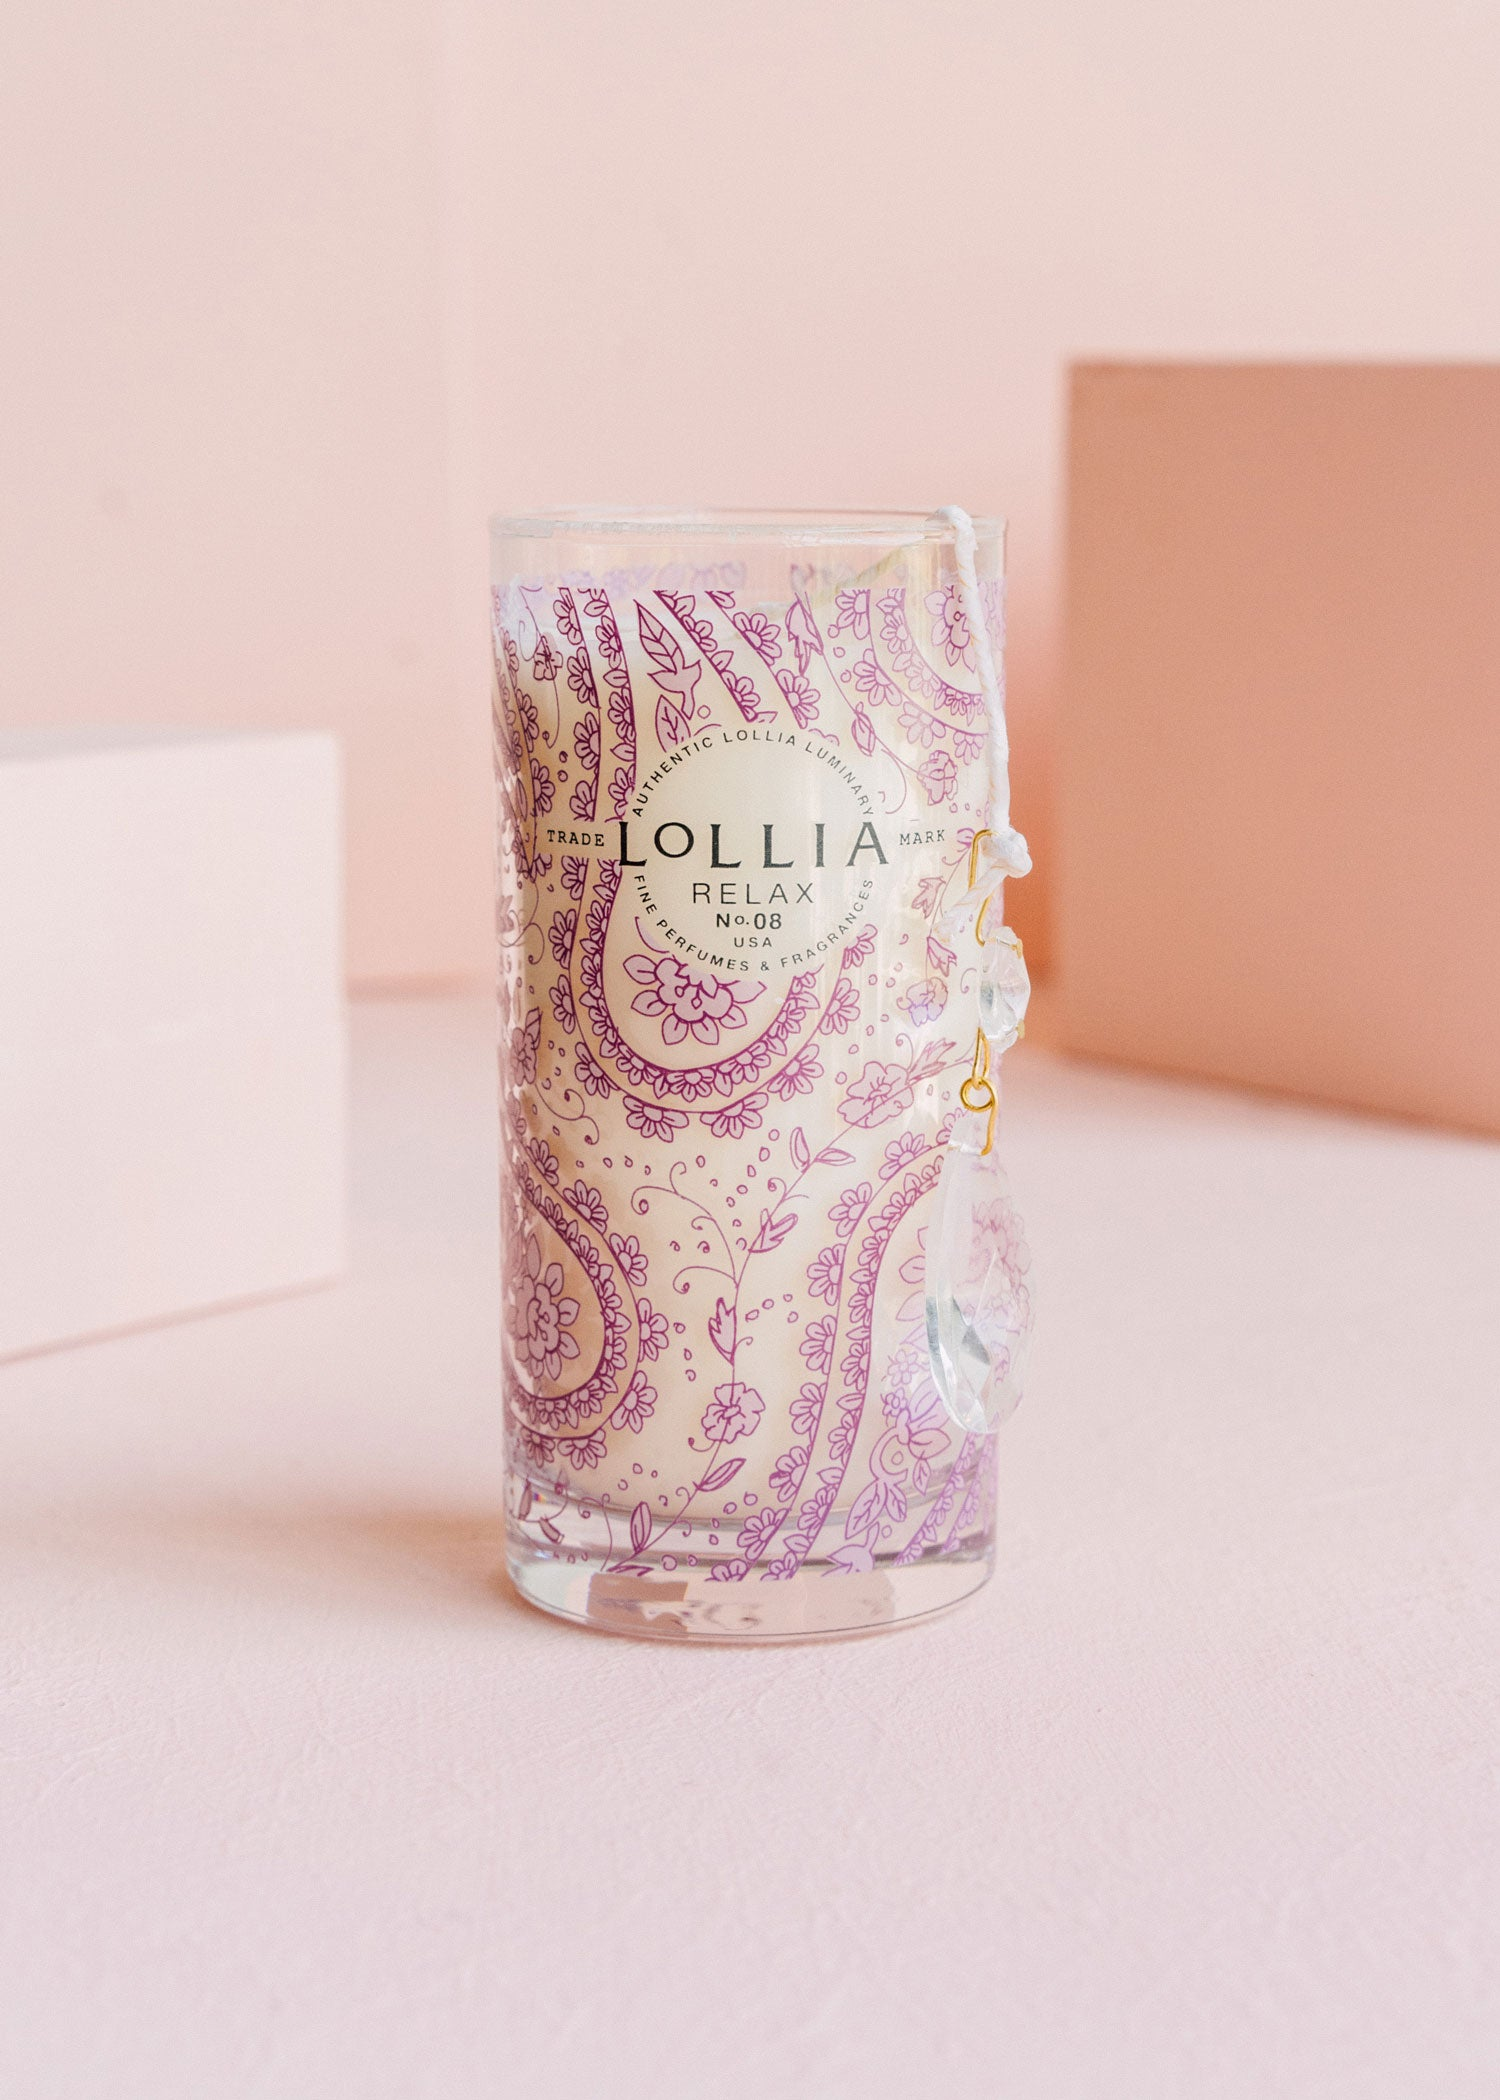 Lollia Relax Gift Set Hand Cream Soap Amp Candle Margot